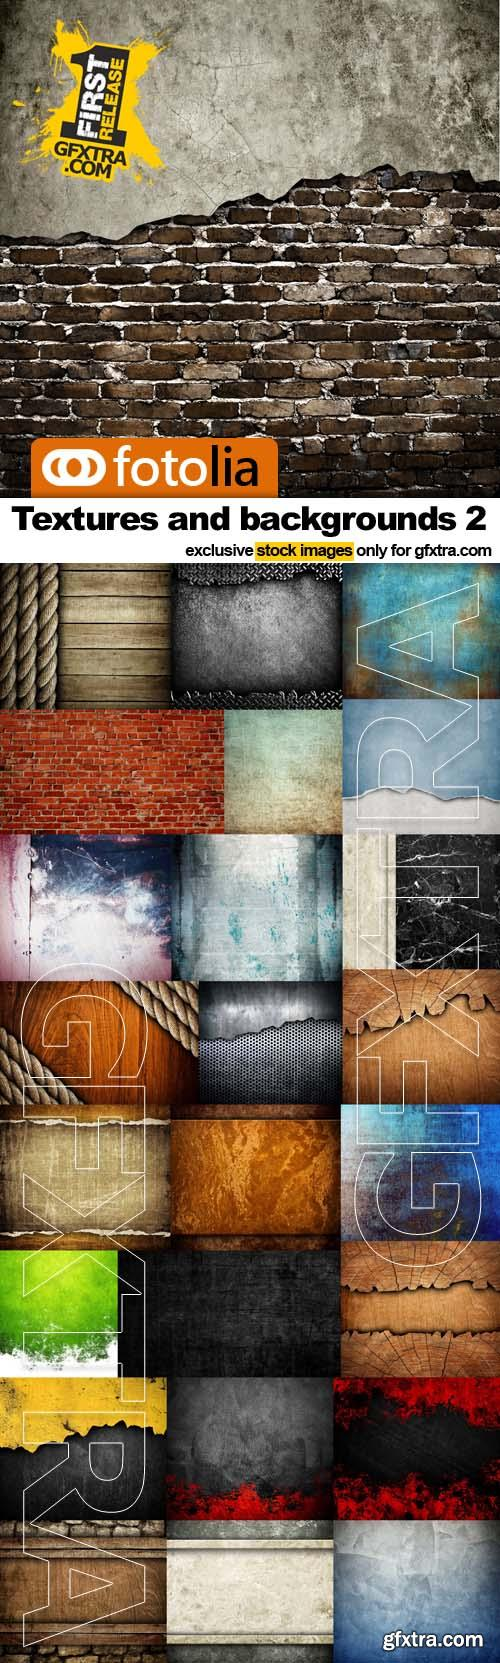 Textures and backgrounds 2 - 25x UHQ JPEGs